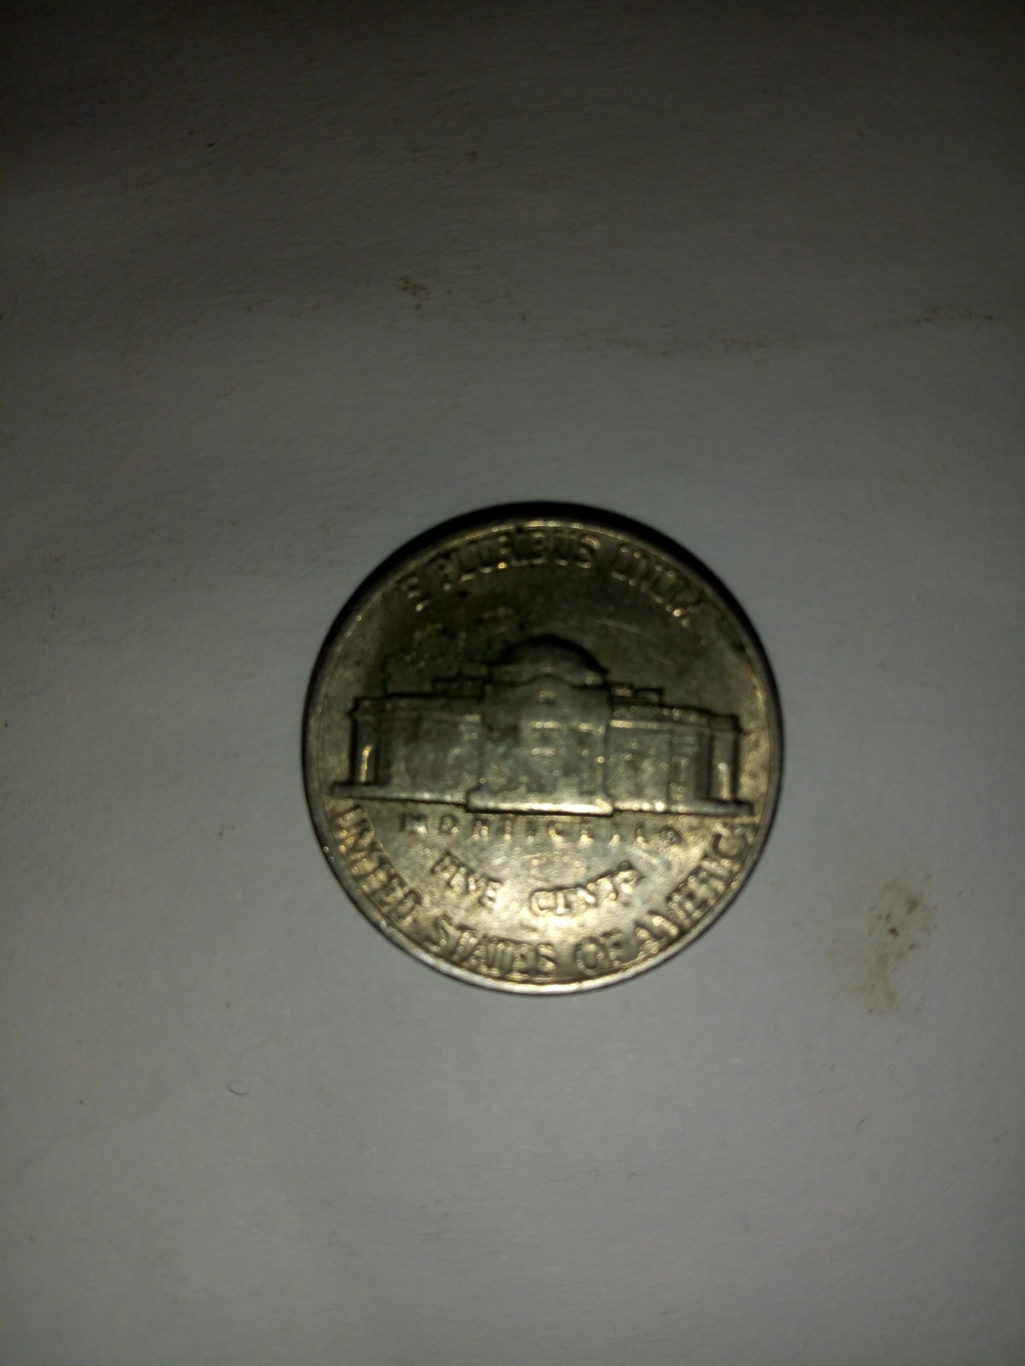 1987_united states of America 5 cents